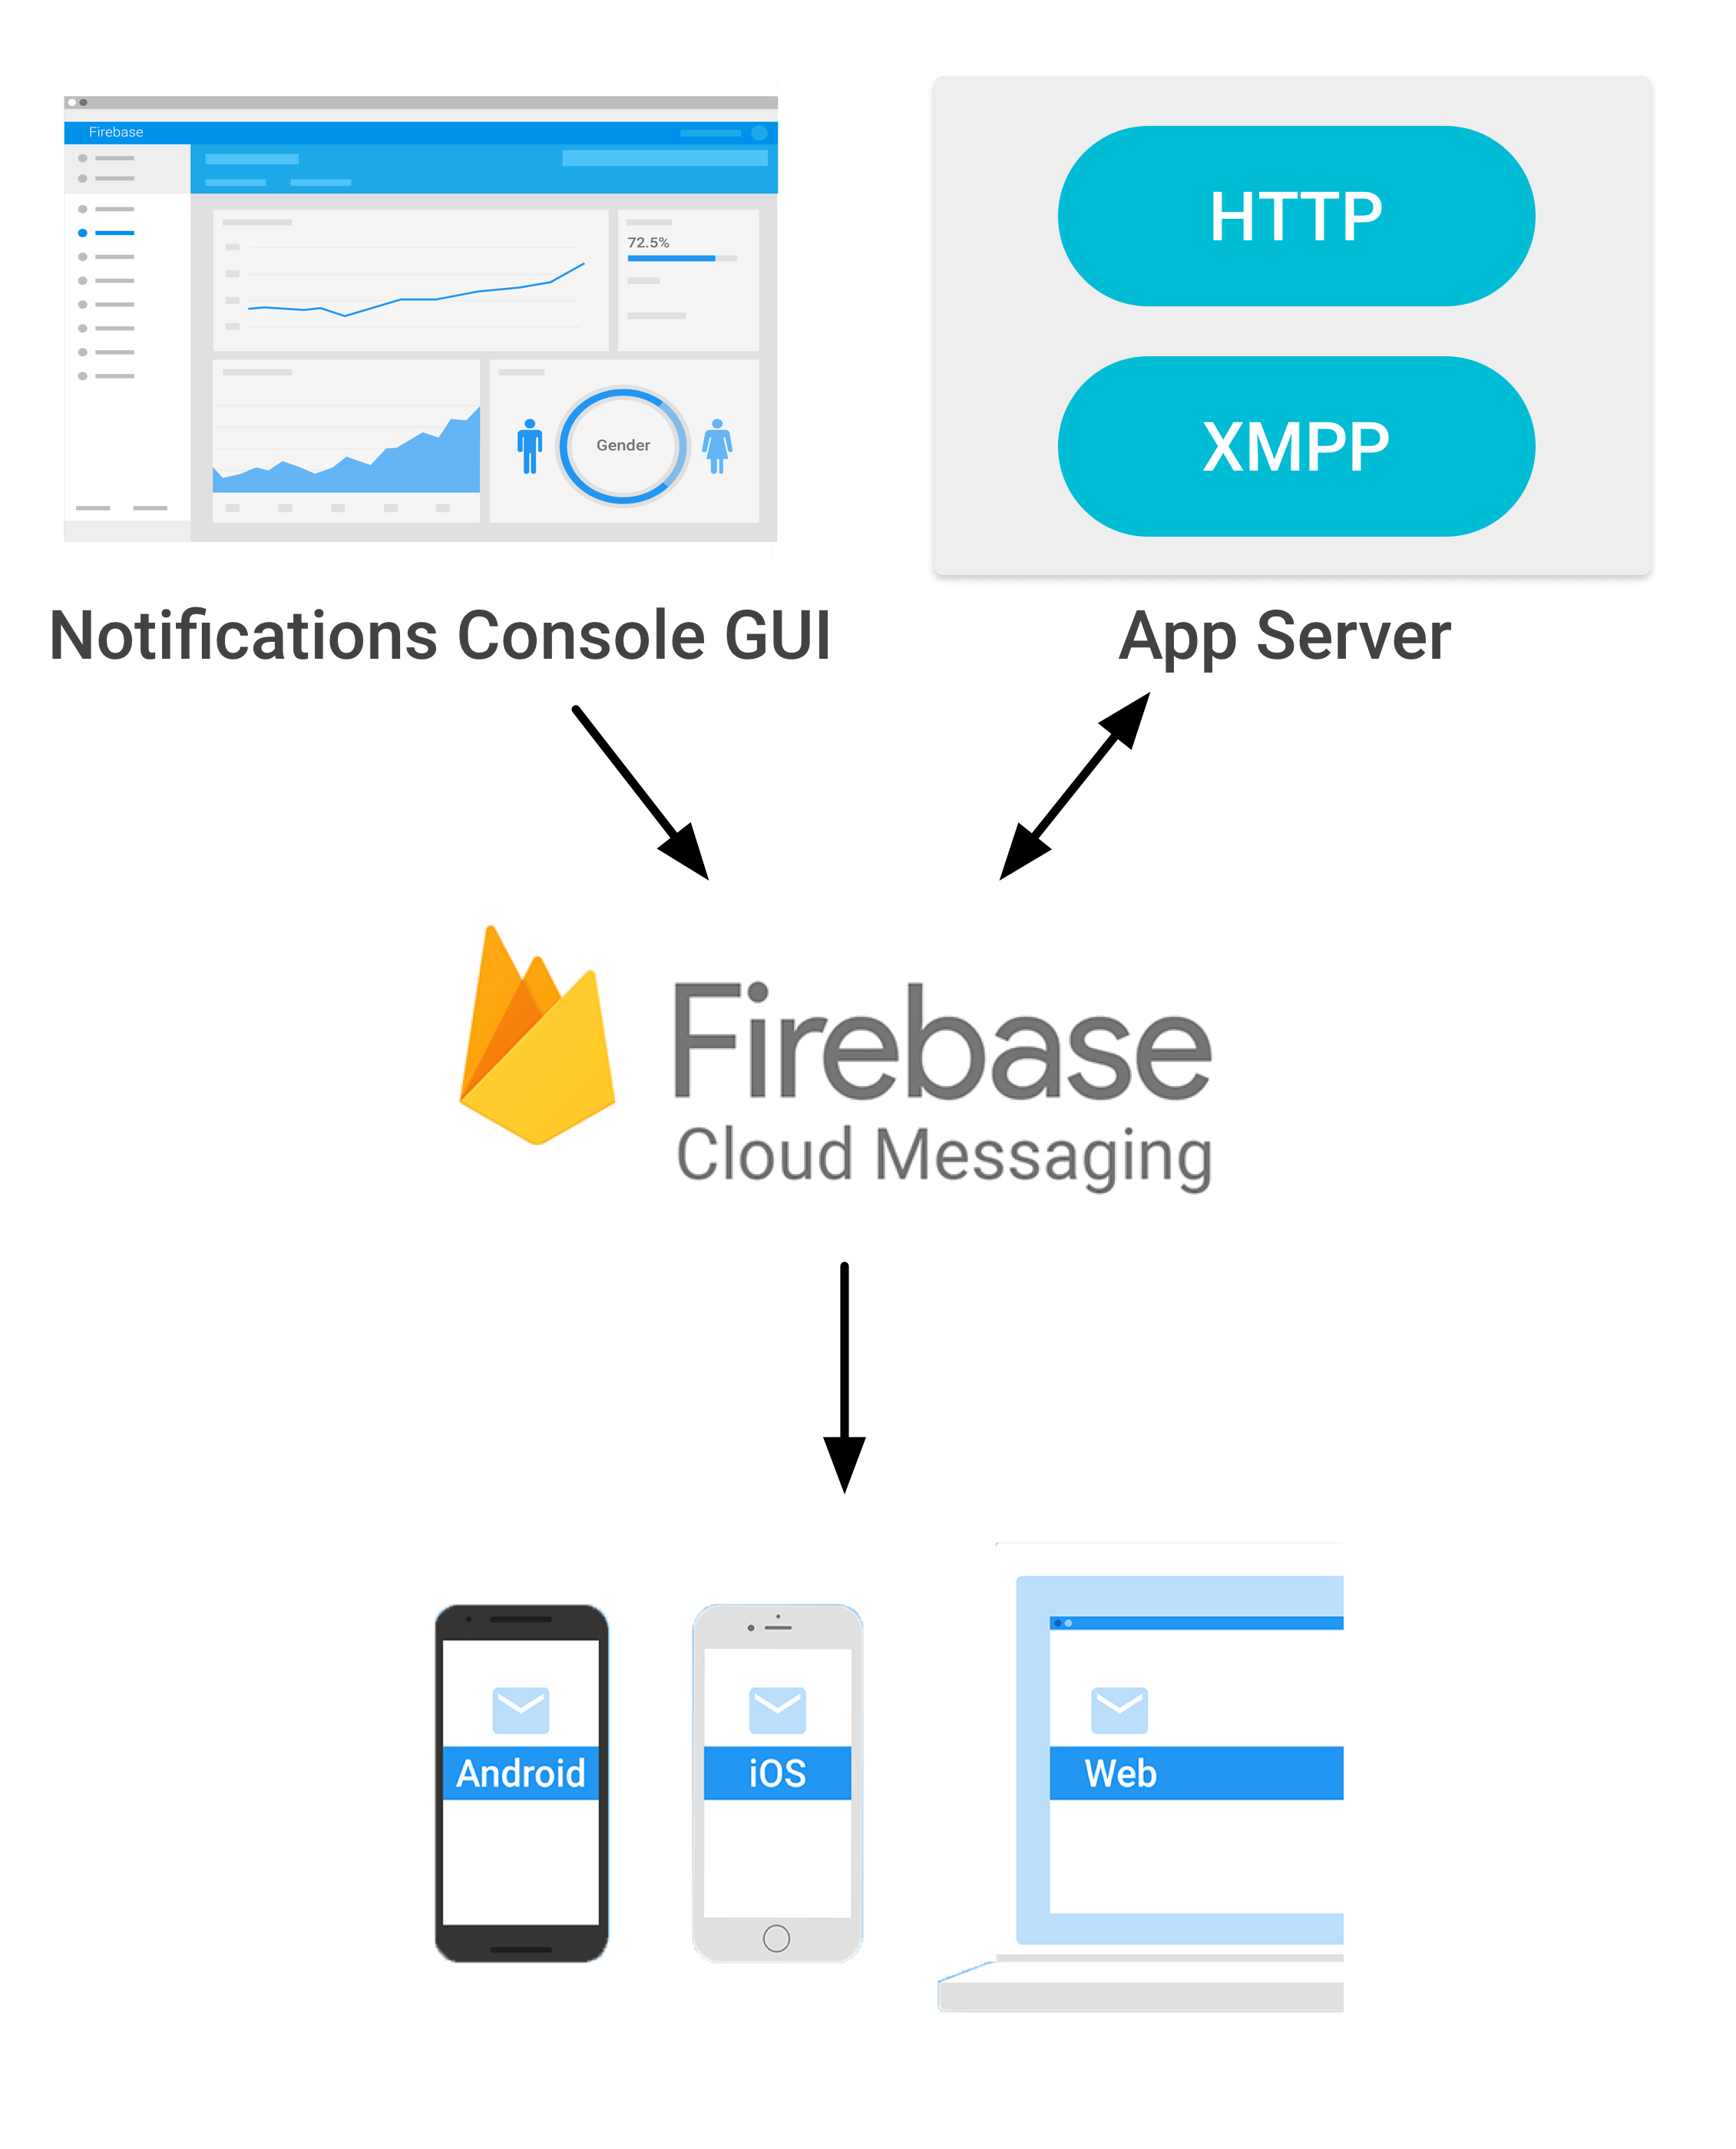 hight resolution of firebase cloud messaging architecture diagram